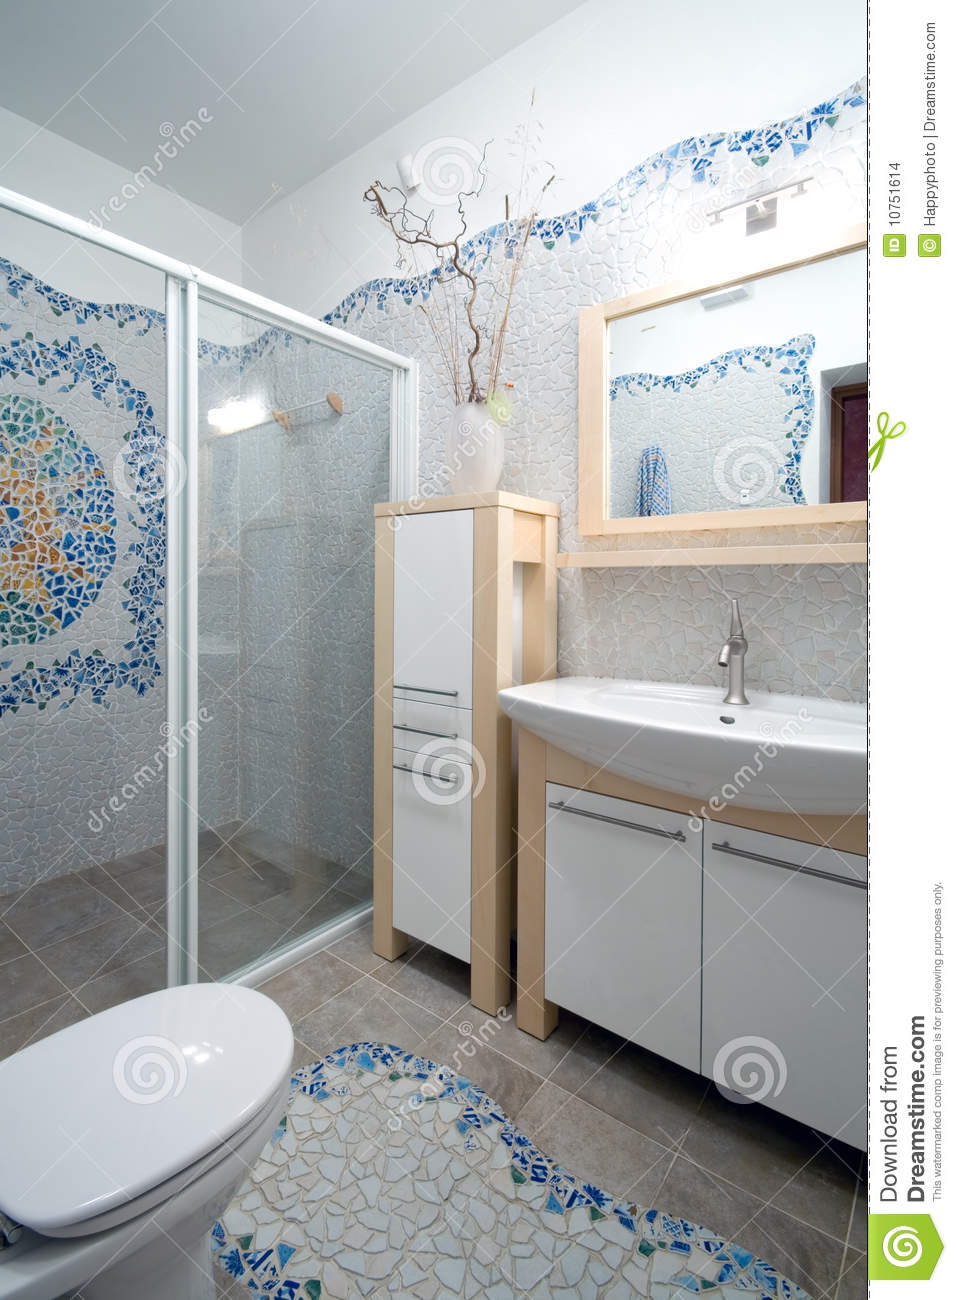 New bathroom interior stock image for Latest bathroom interior